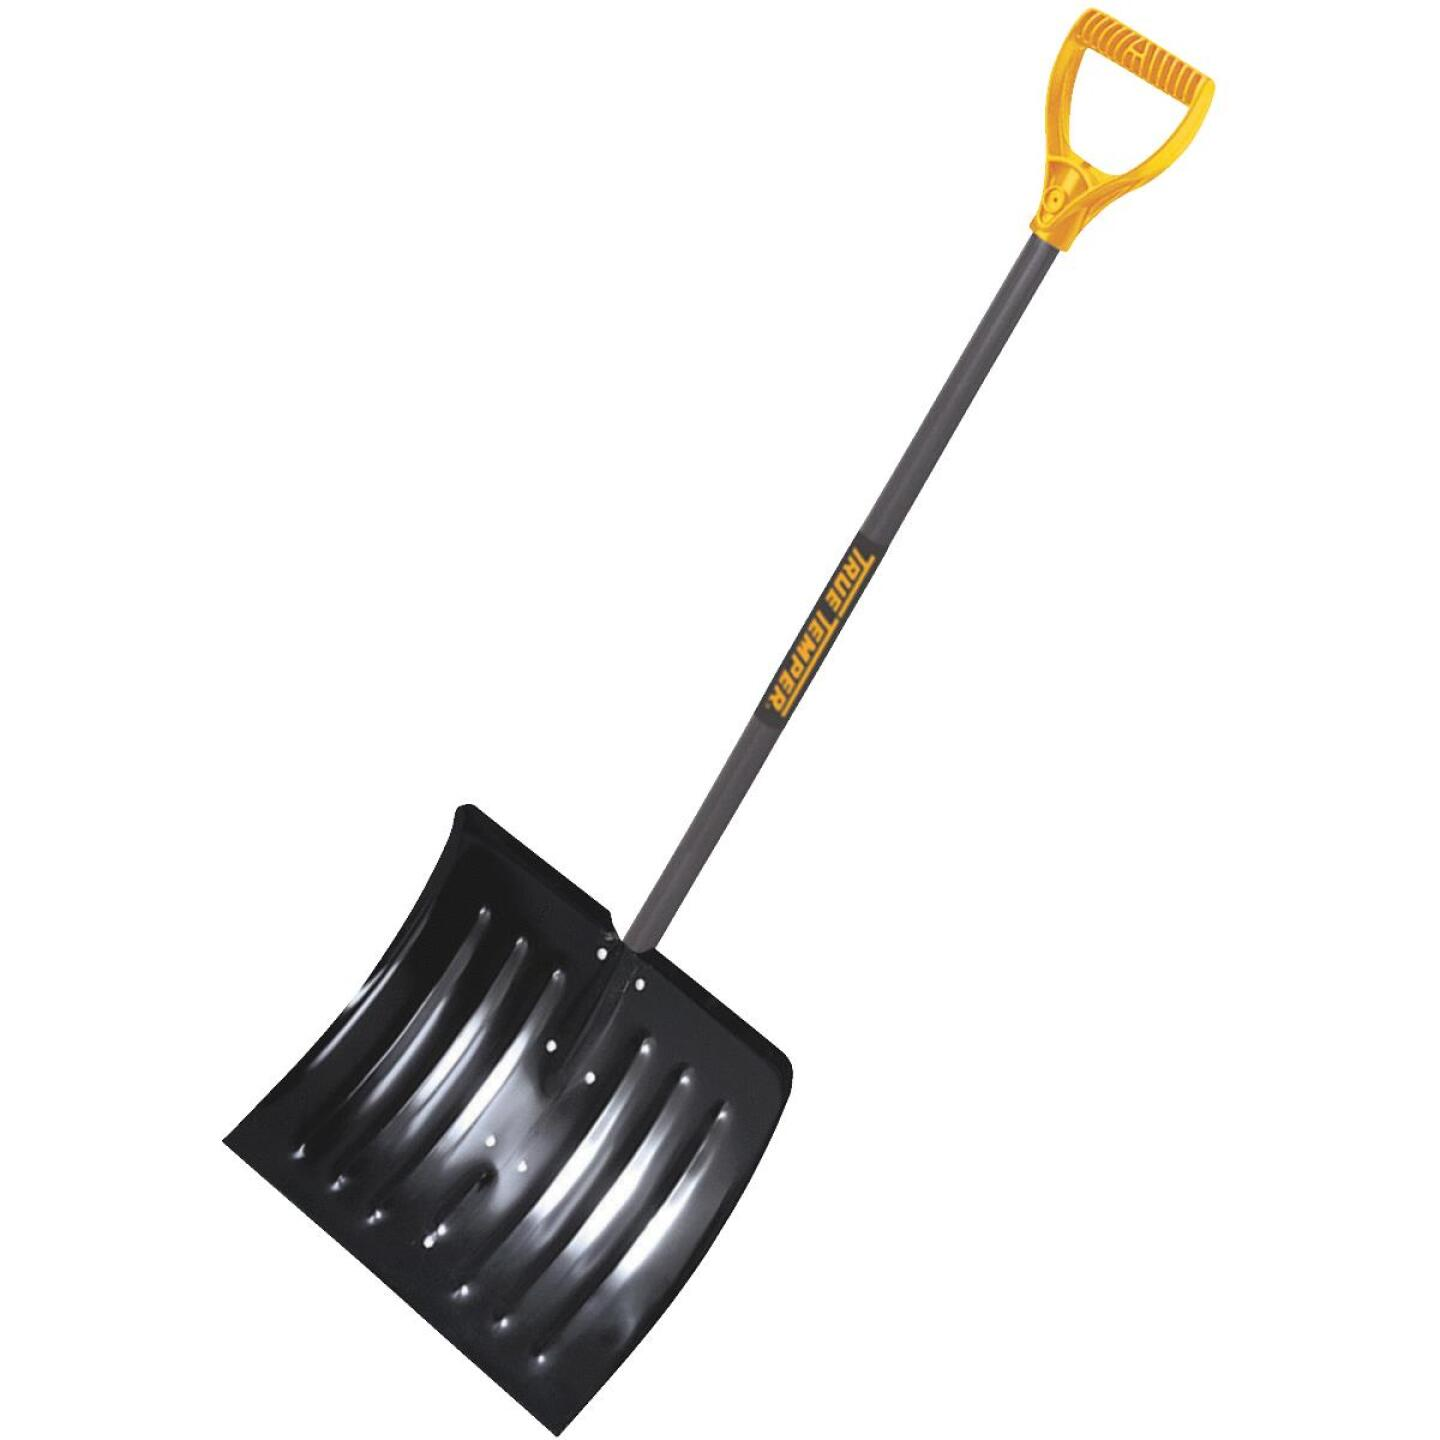 True Temper 18 In. Steel Snow Shovel with 37 In. Wood Handle Image 1